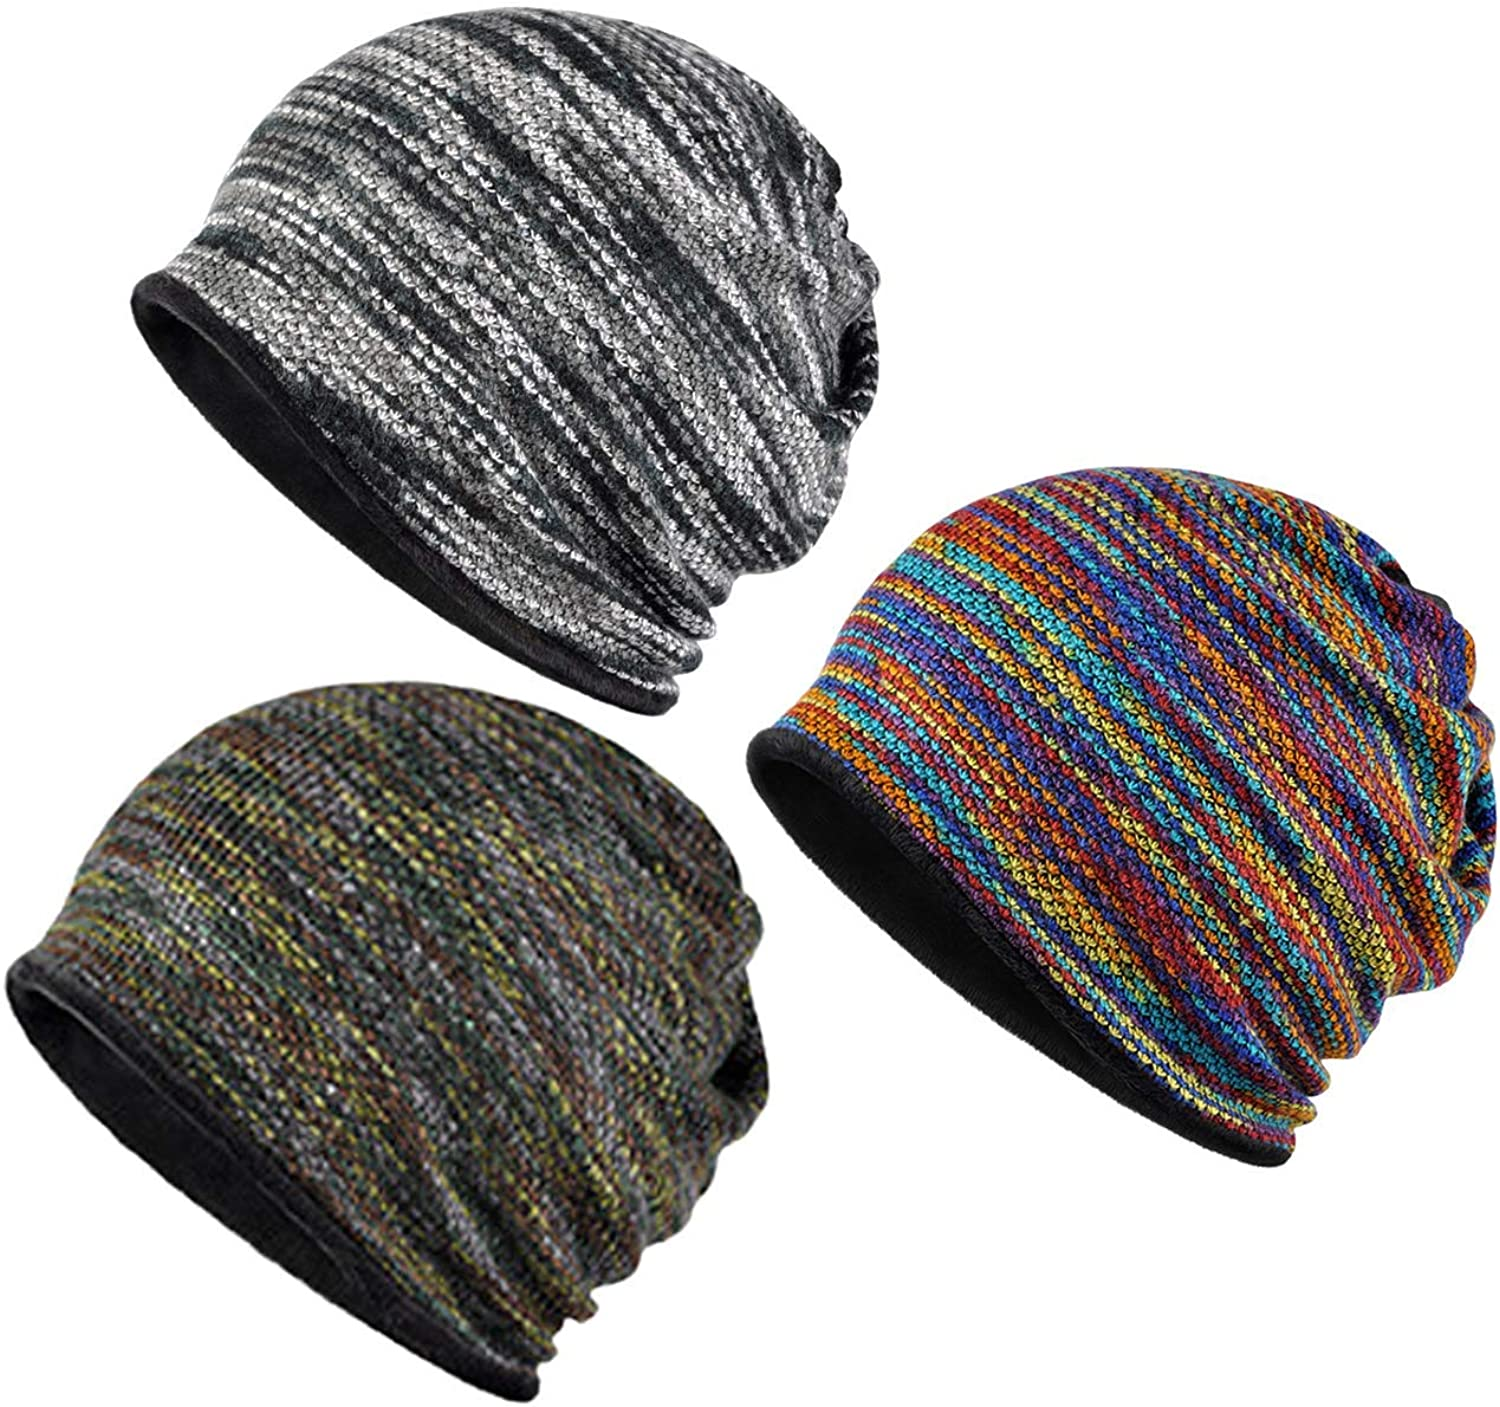 Yuzemumu Colorful Beanies Cancer Headwear Skull Cap Knitted hat Scarf for Womens Mens